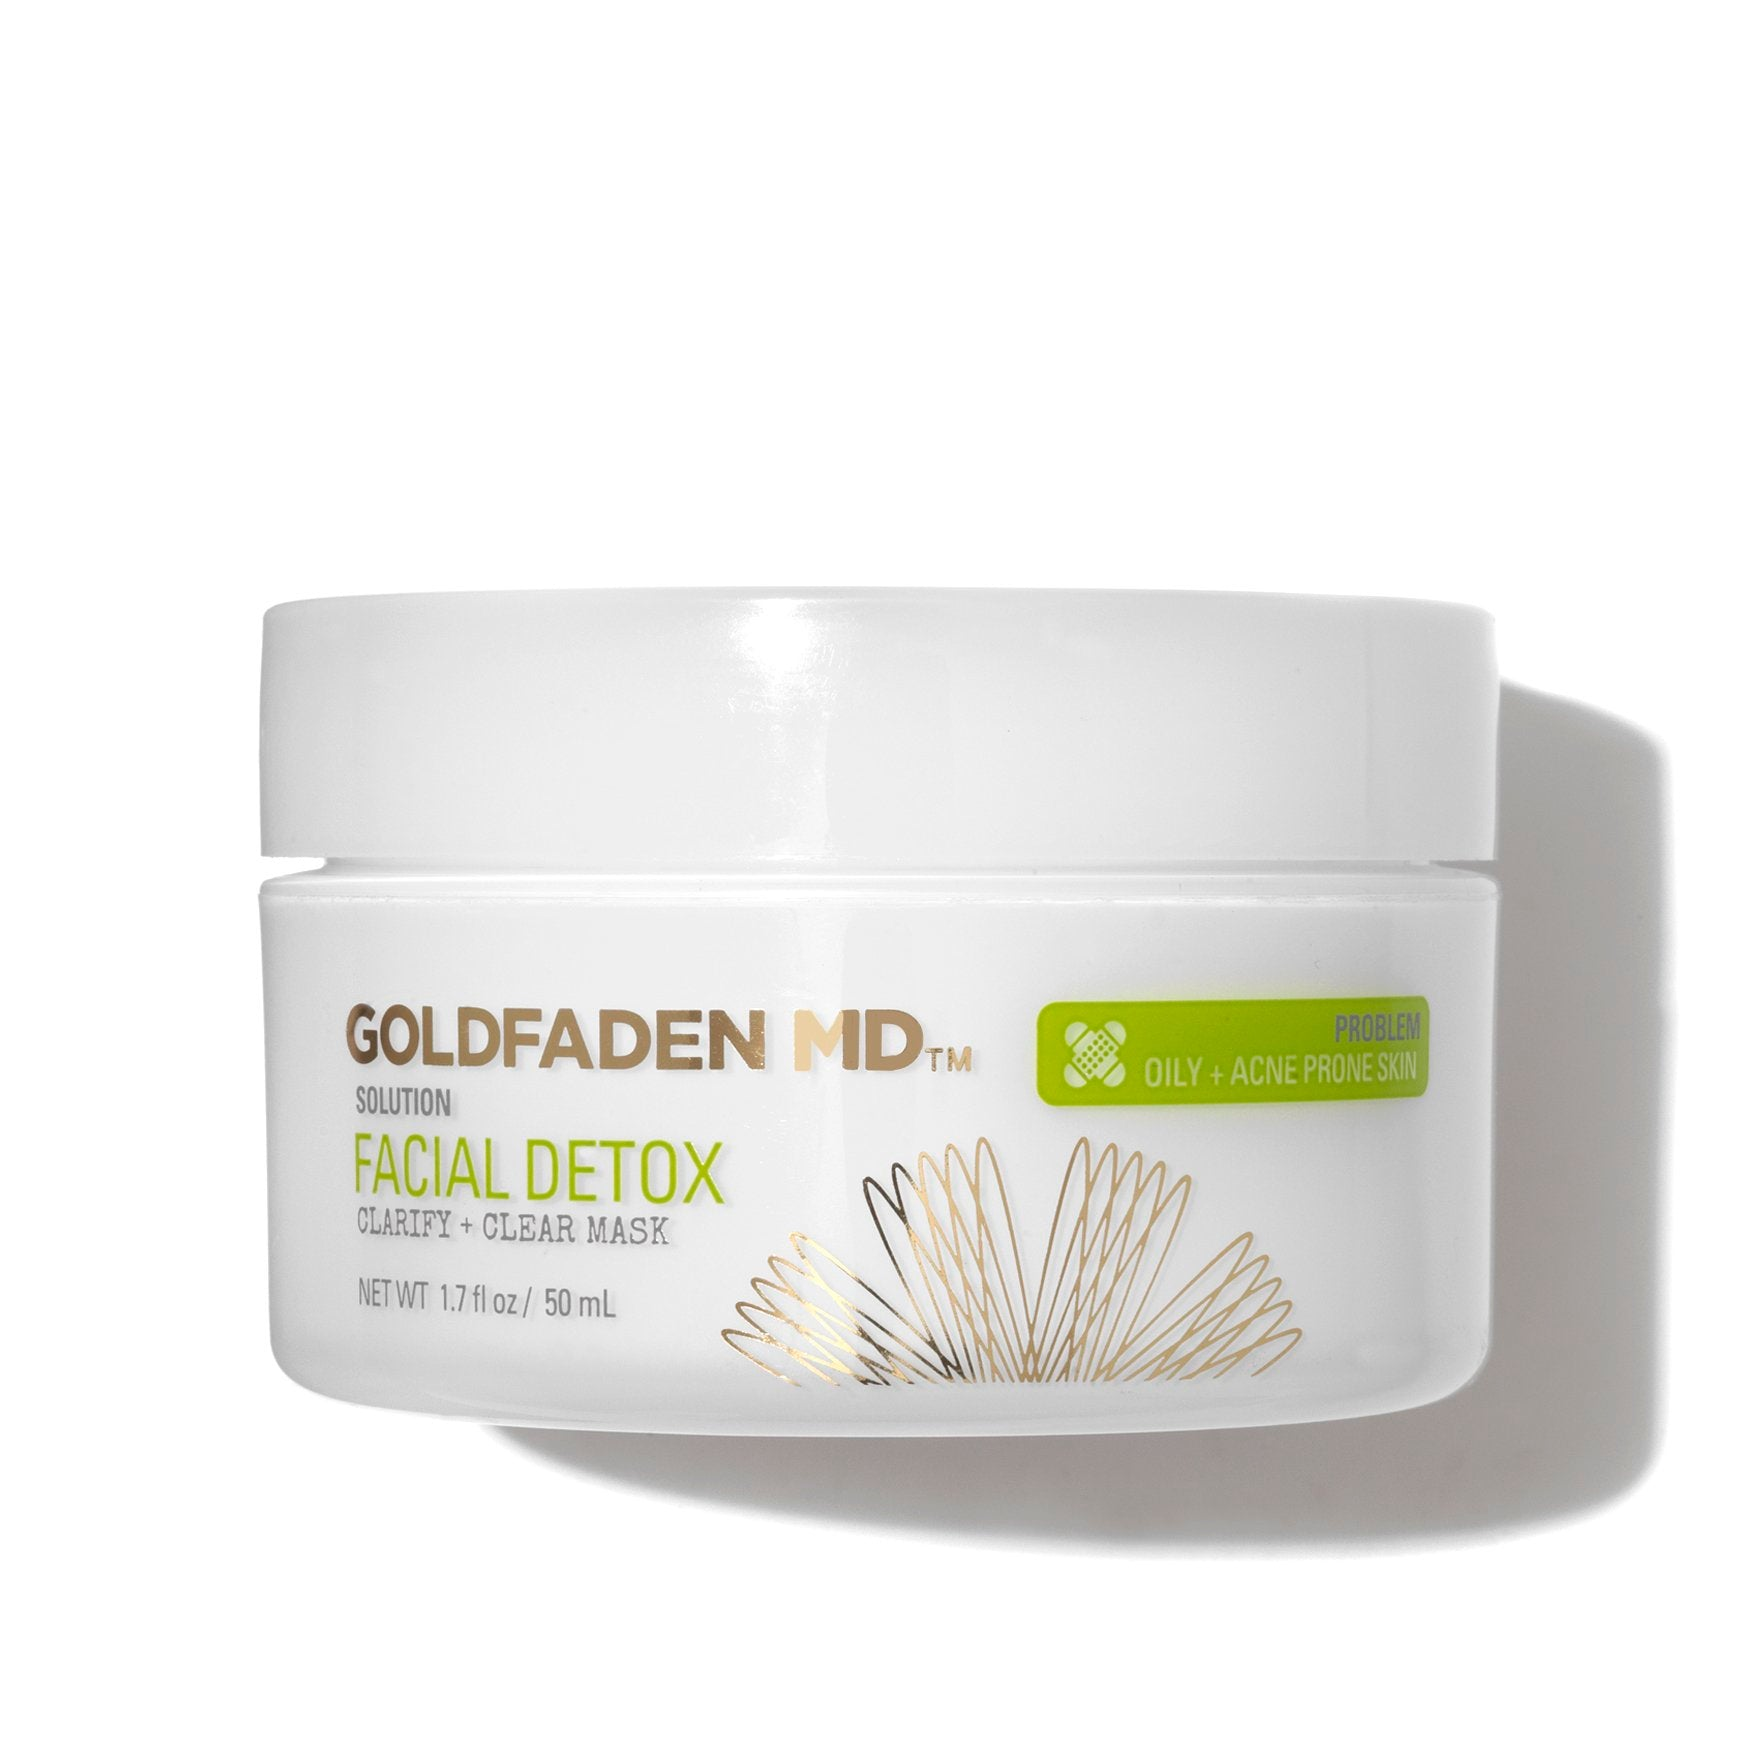 Goldfaden MD Facial Detox